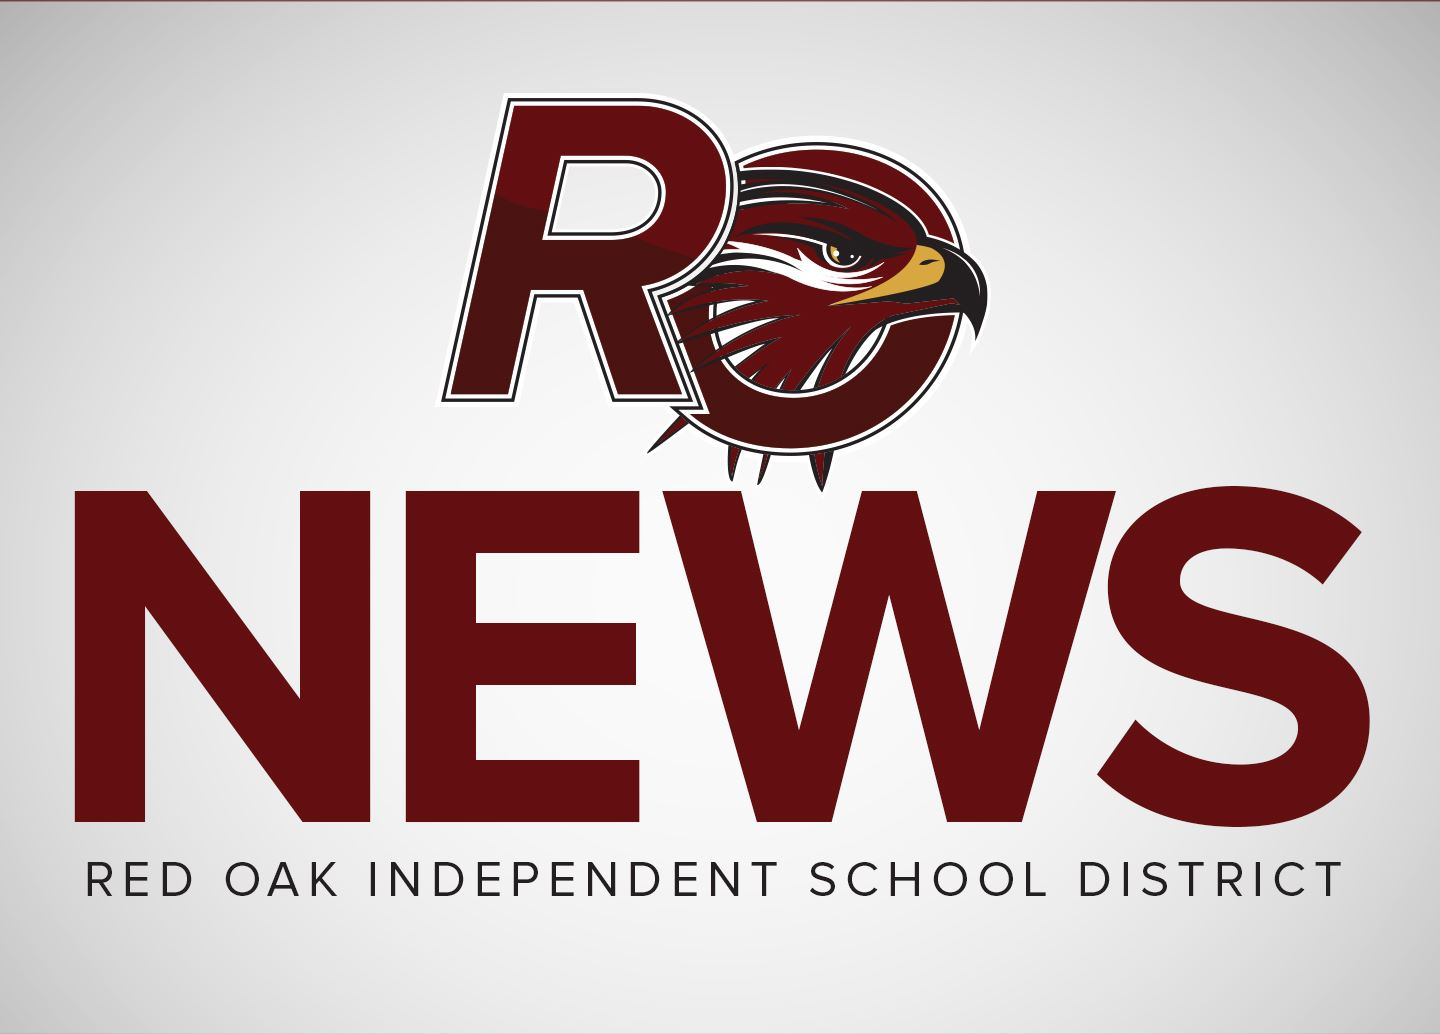 RO News for Red Oak Independent School District